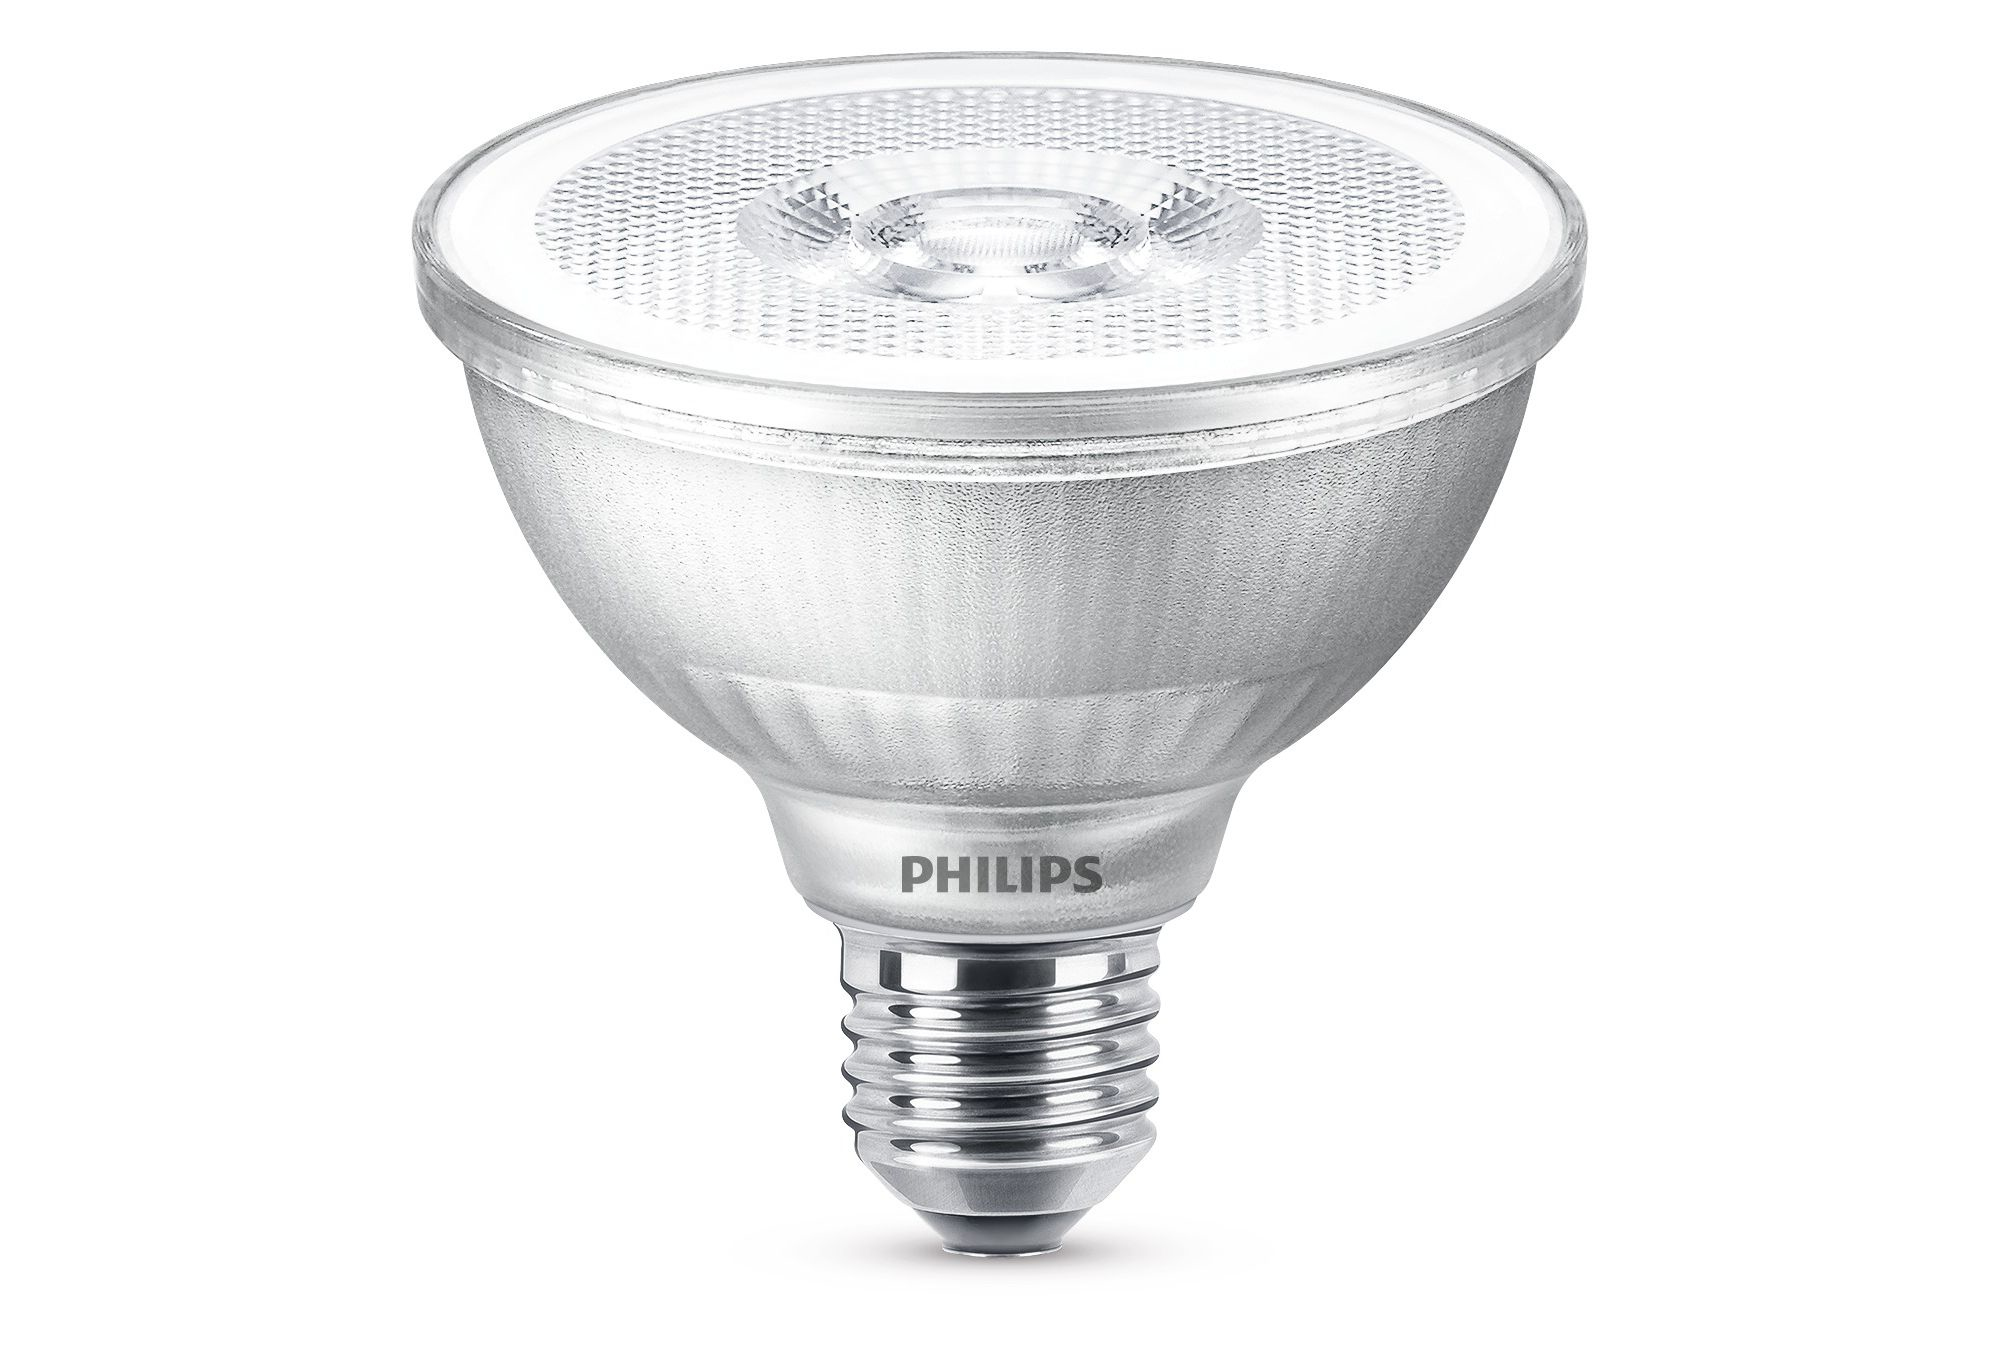 Philips - Lampadina a LED - Mlpar307582725d